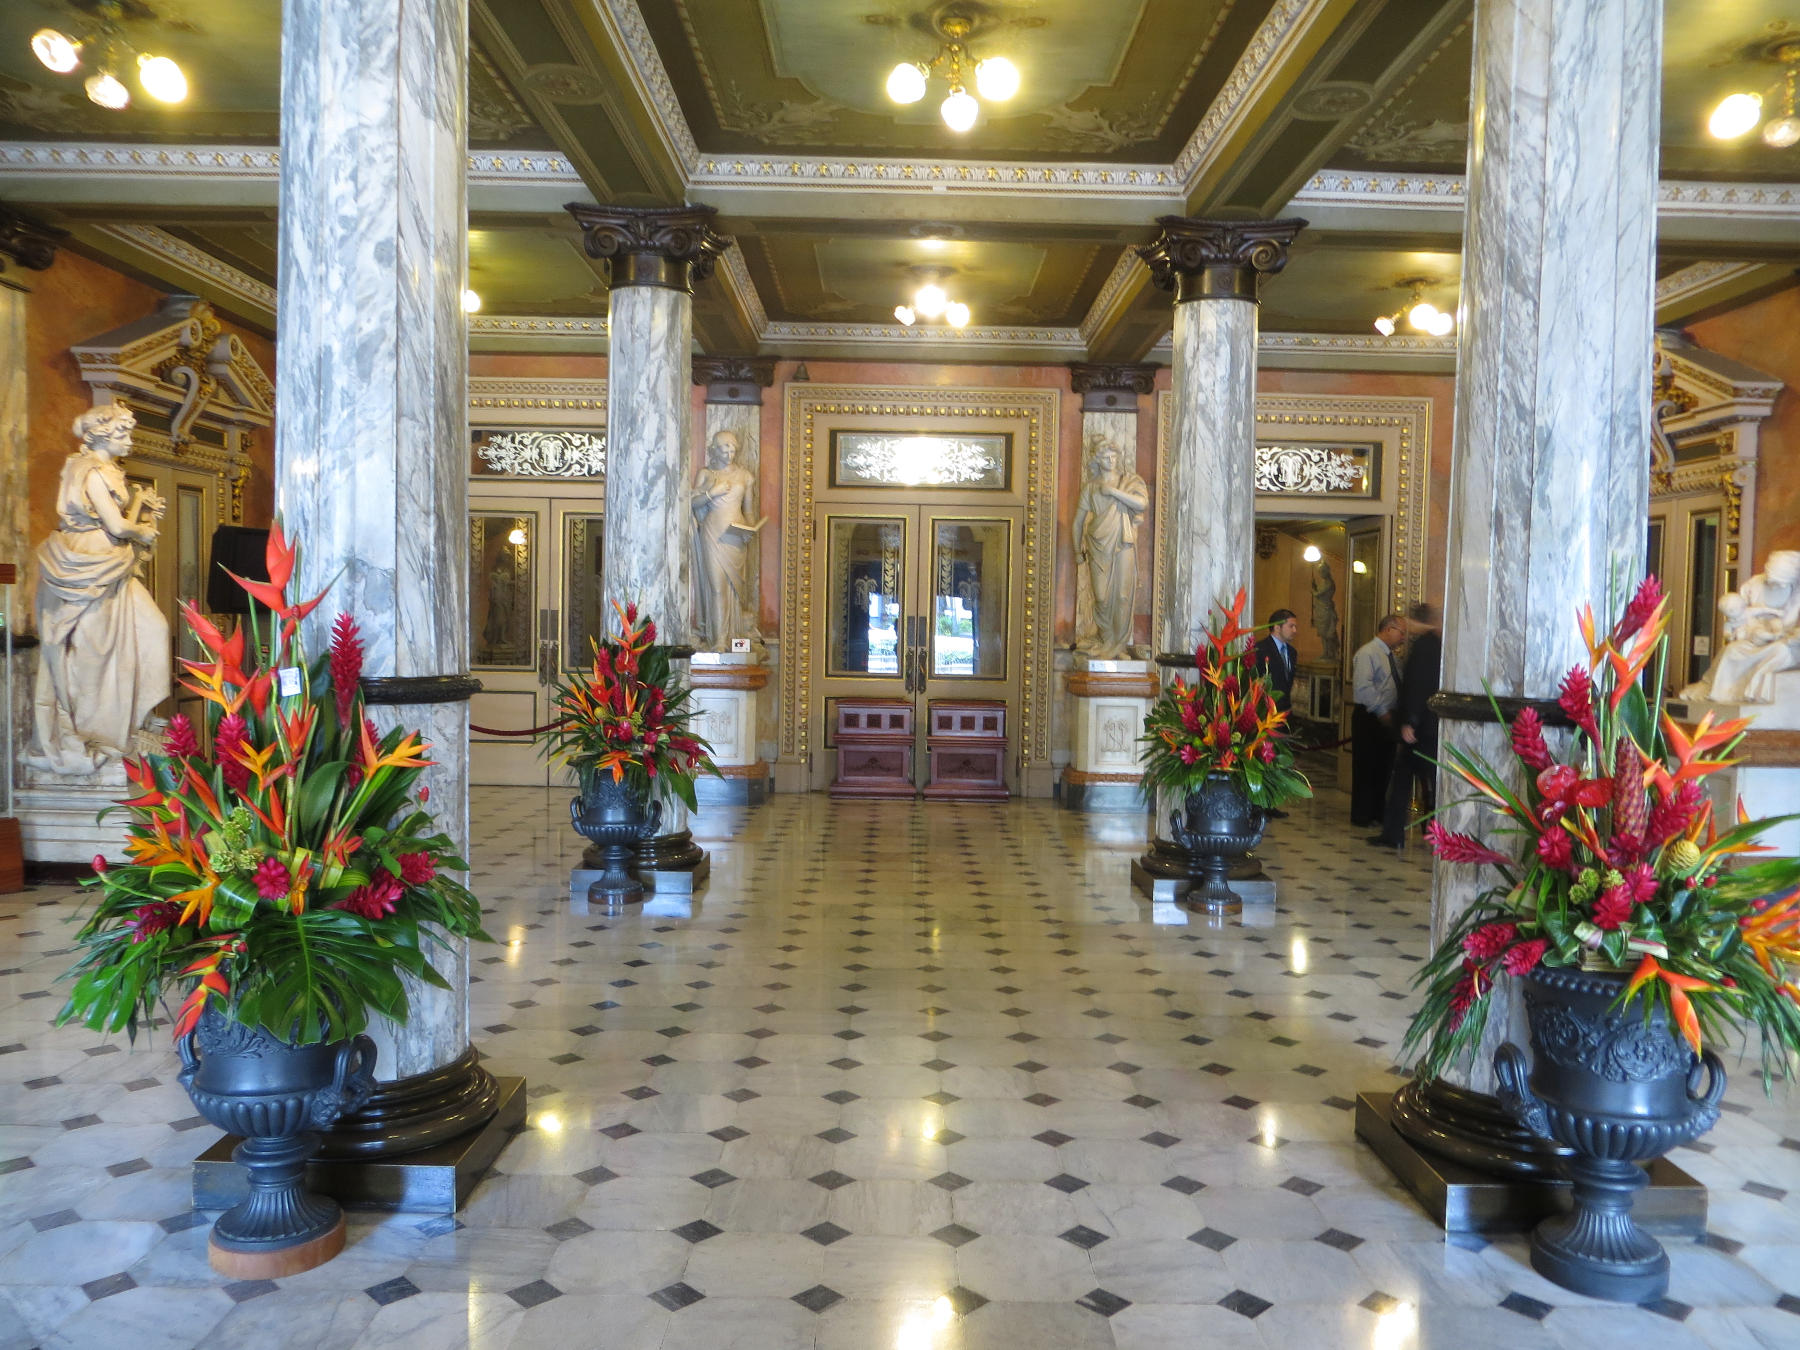 The lobby of the National Theater, with marble floors and columns, offers a stunning first impression.